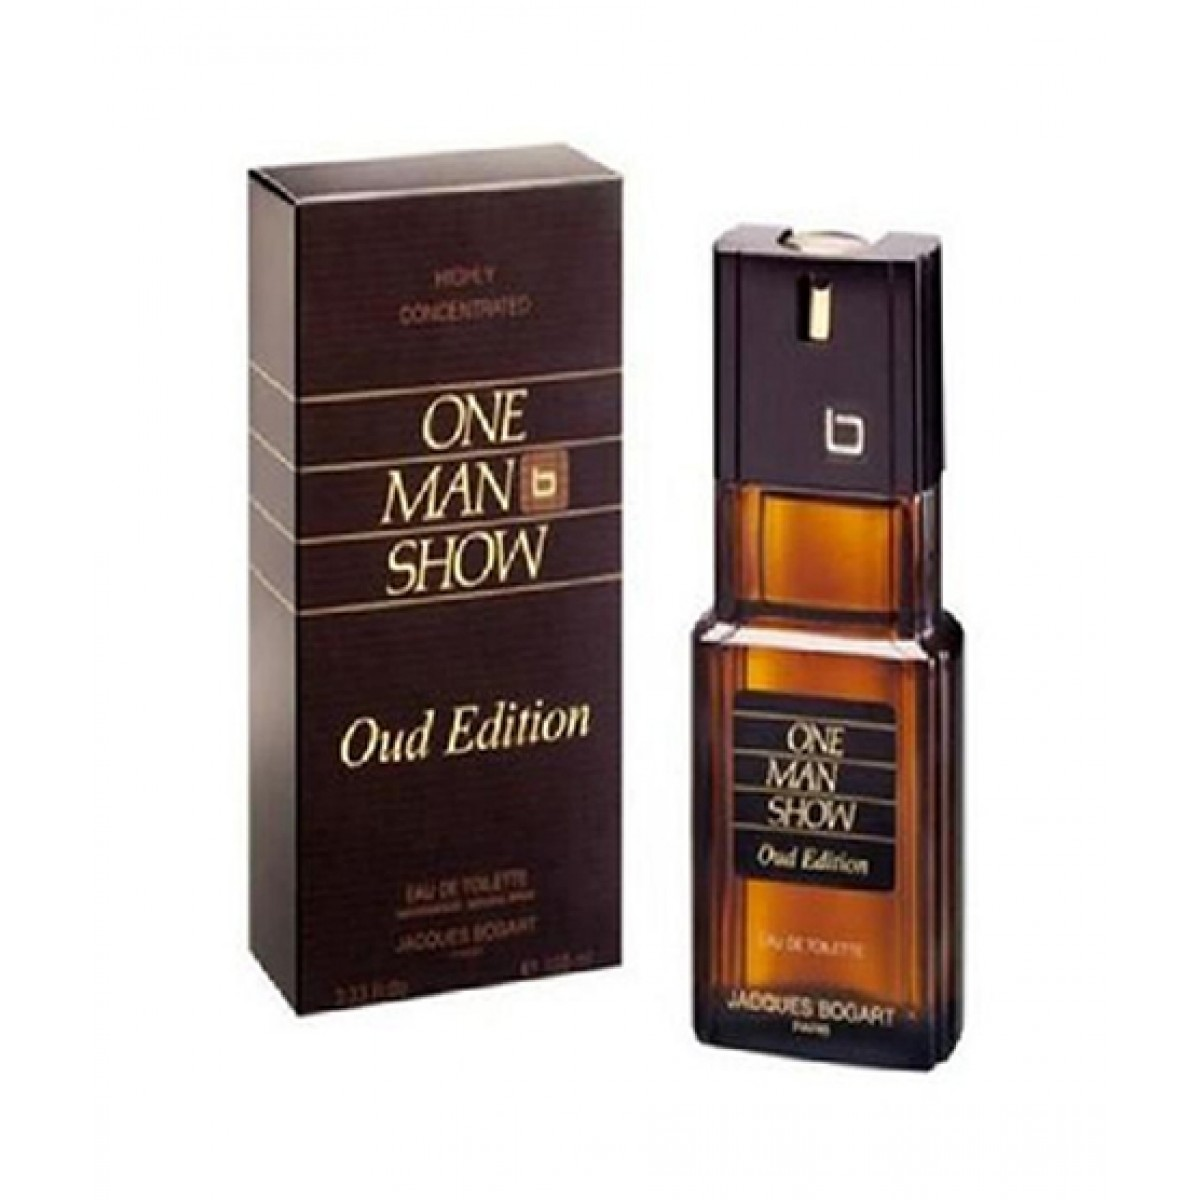 1103b5d8ef Jacques Bogart One Man Show Oud Edition Price in Pakistan